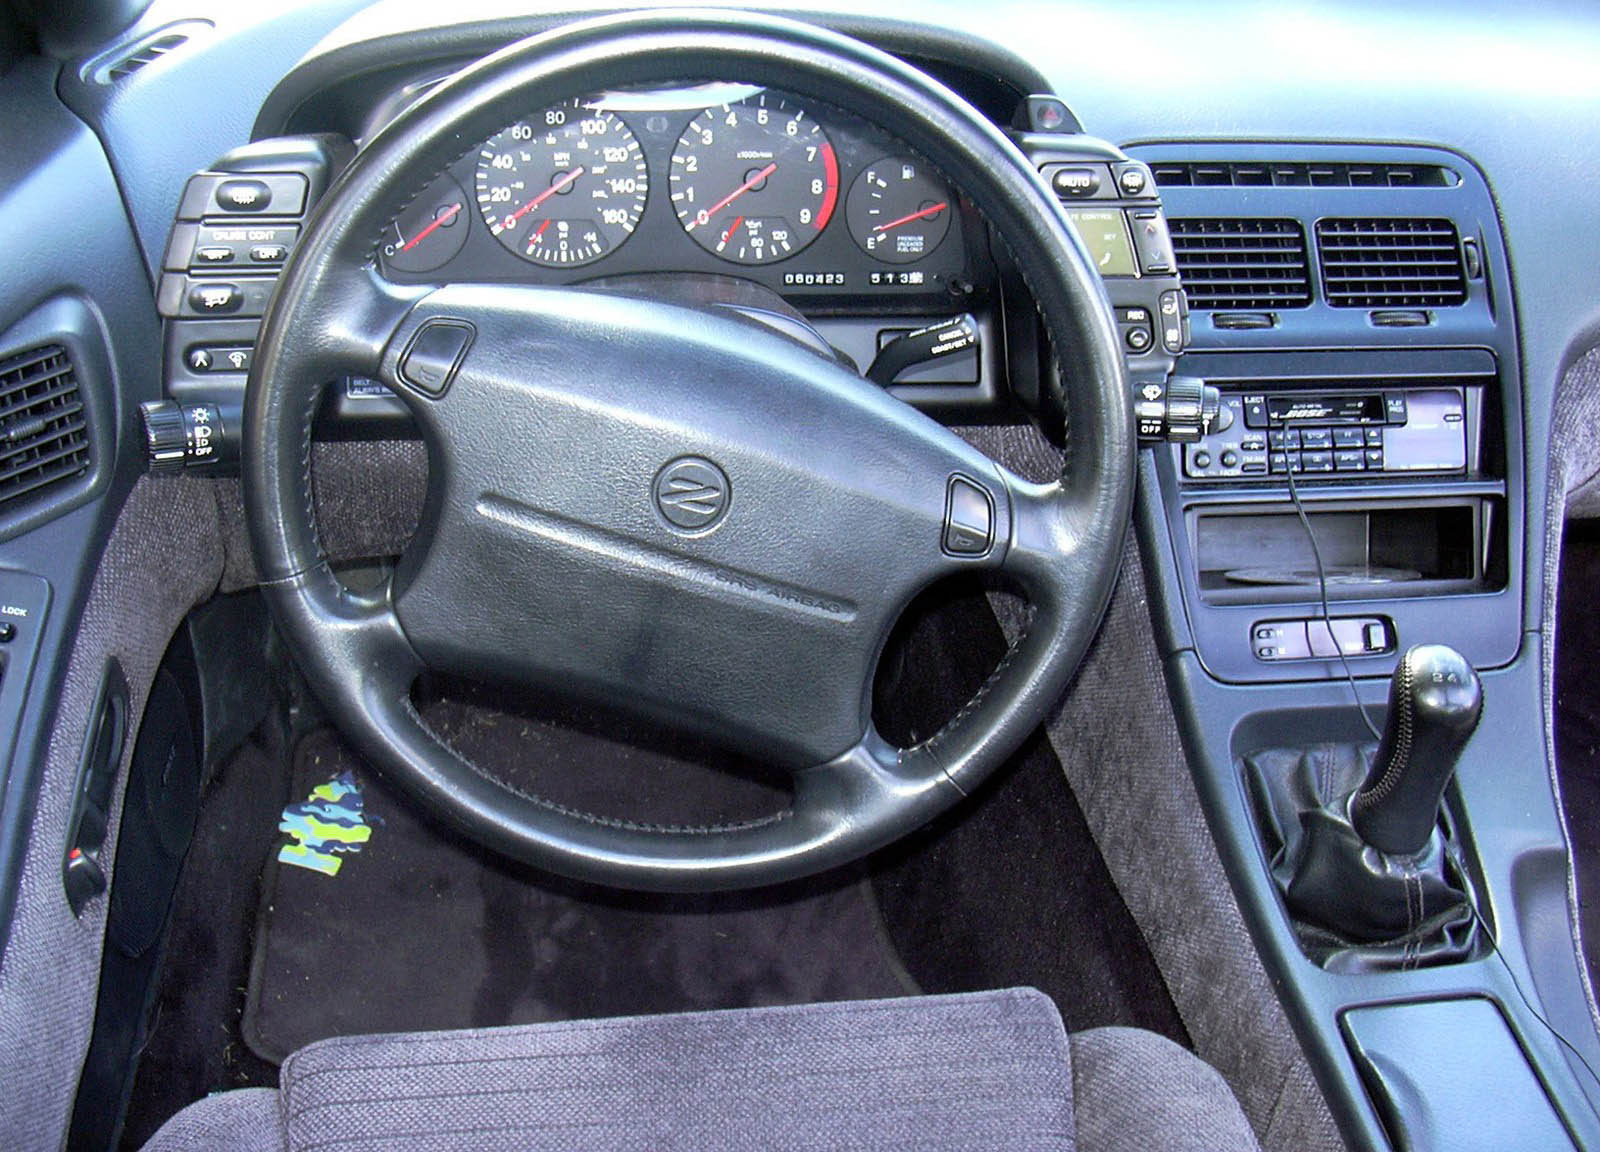 1991 - 1996 Nissan 300zx | Top Speed